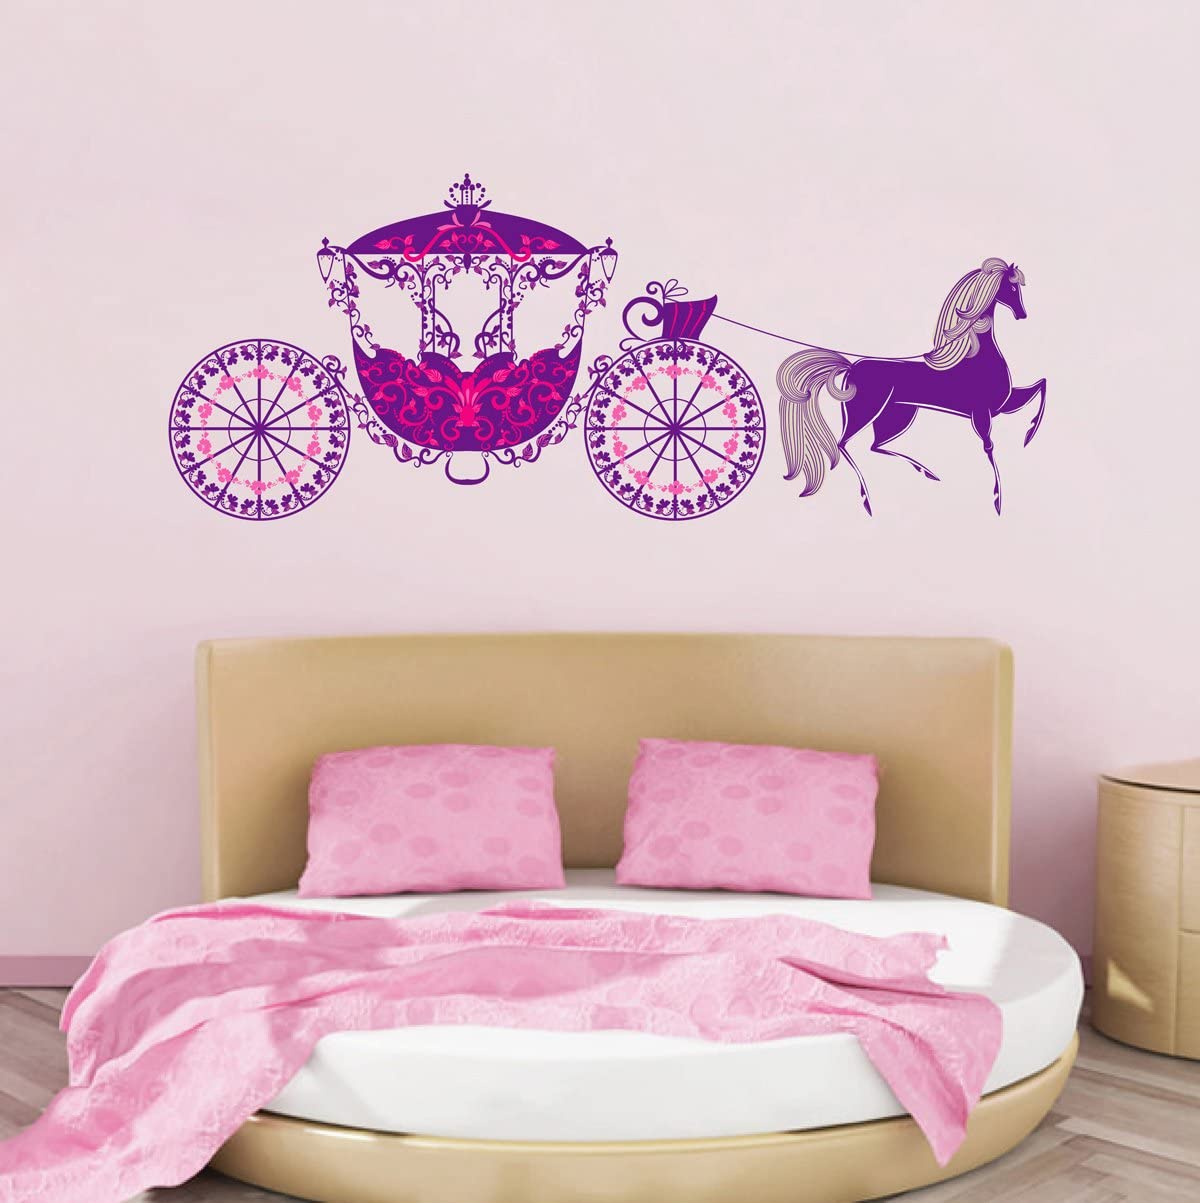 STICKERSFORLIFE cik230 Full Color Wall Decal Carriage Horse Princess Fairy Tale Children's Room